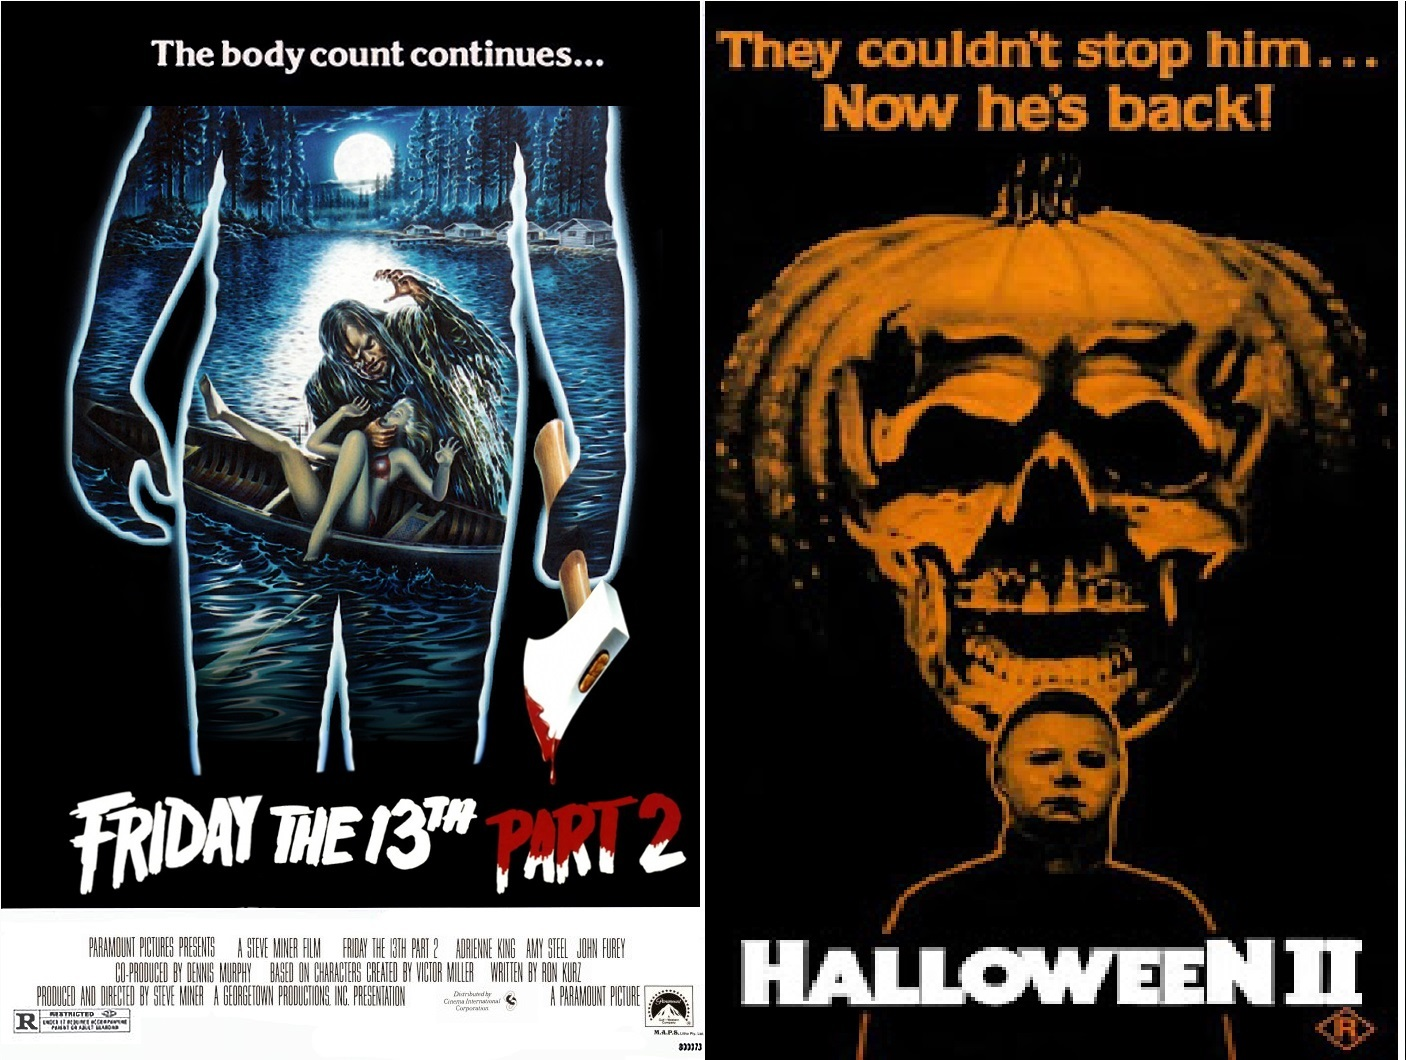 Competing Film Showdown: COMPETING FILM SHOWDOWN - Friday the 13th ...